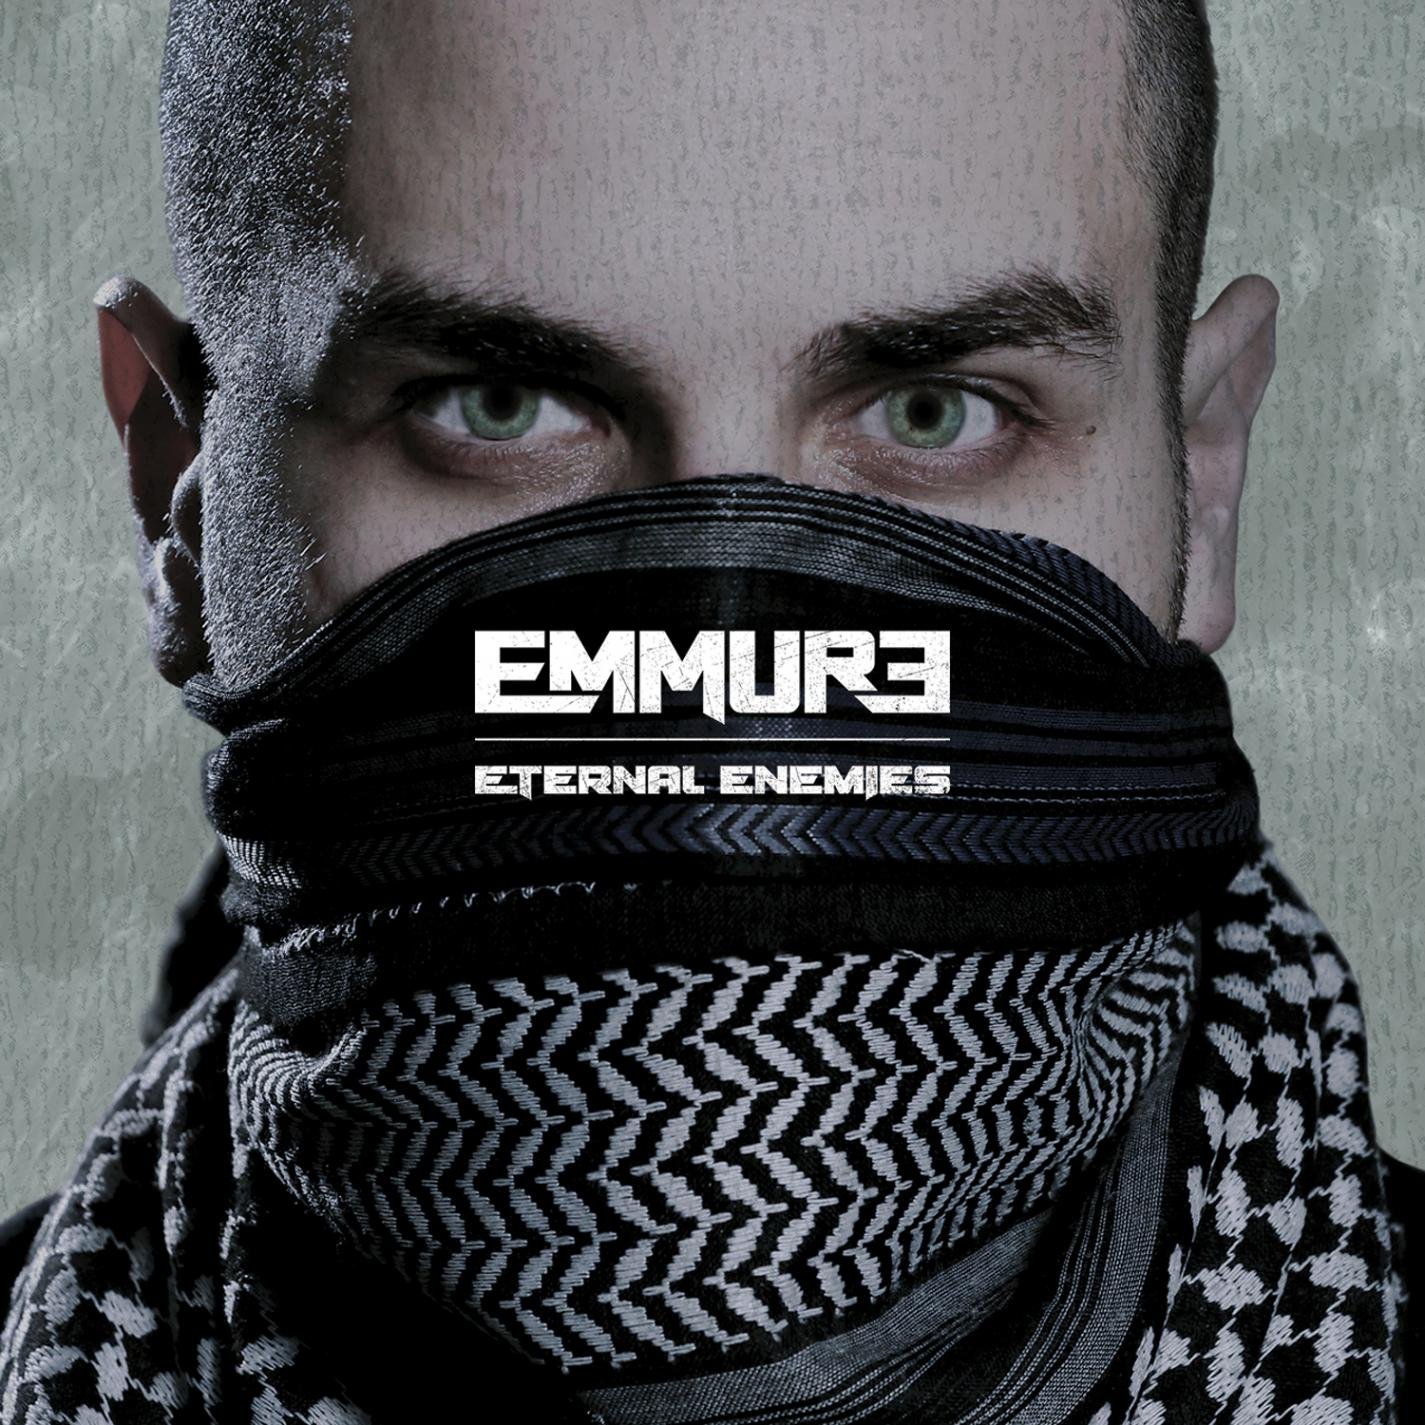 Speaker Of The Dead by Emmure on Amazon Music - Amazon.com